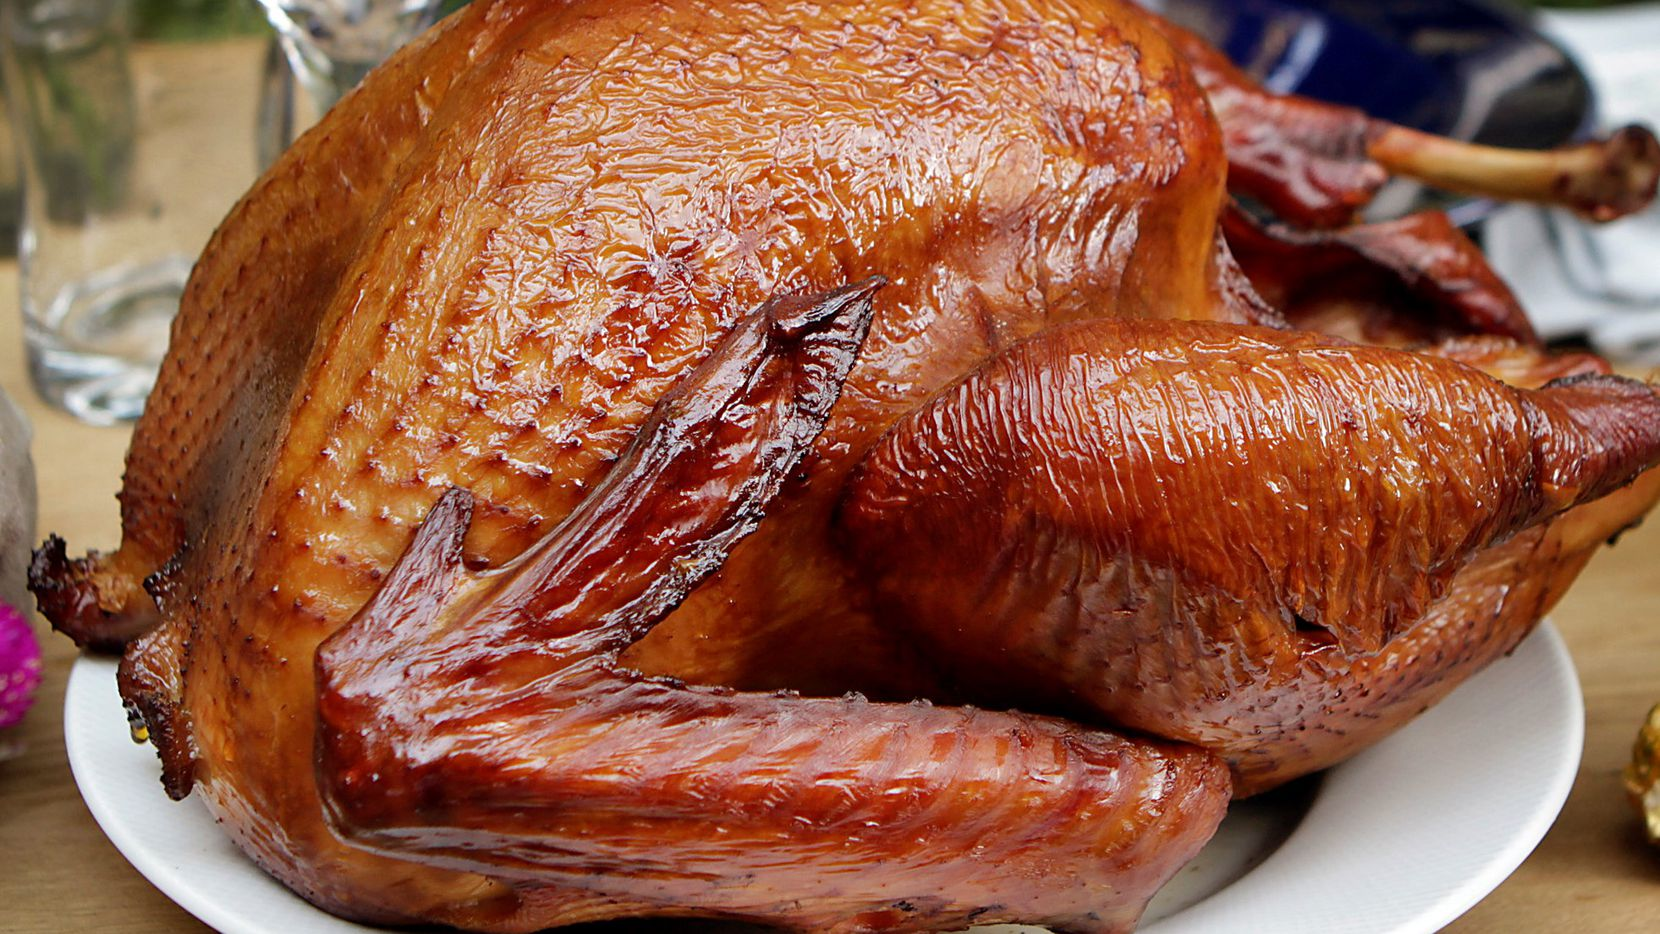 Hundreds of turkeys will be given away Saturday at Food Rite grocery in Oak Cliff.